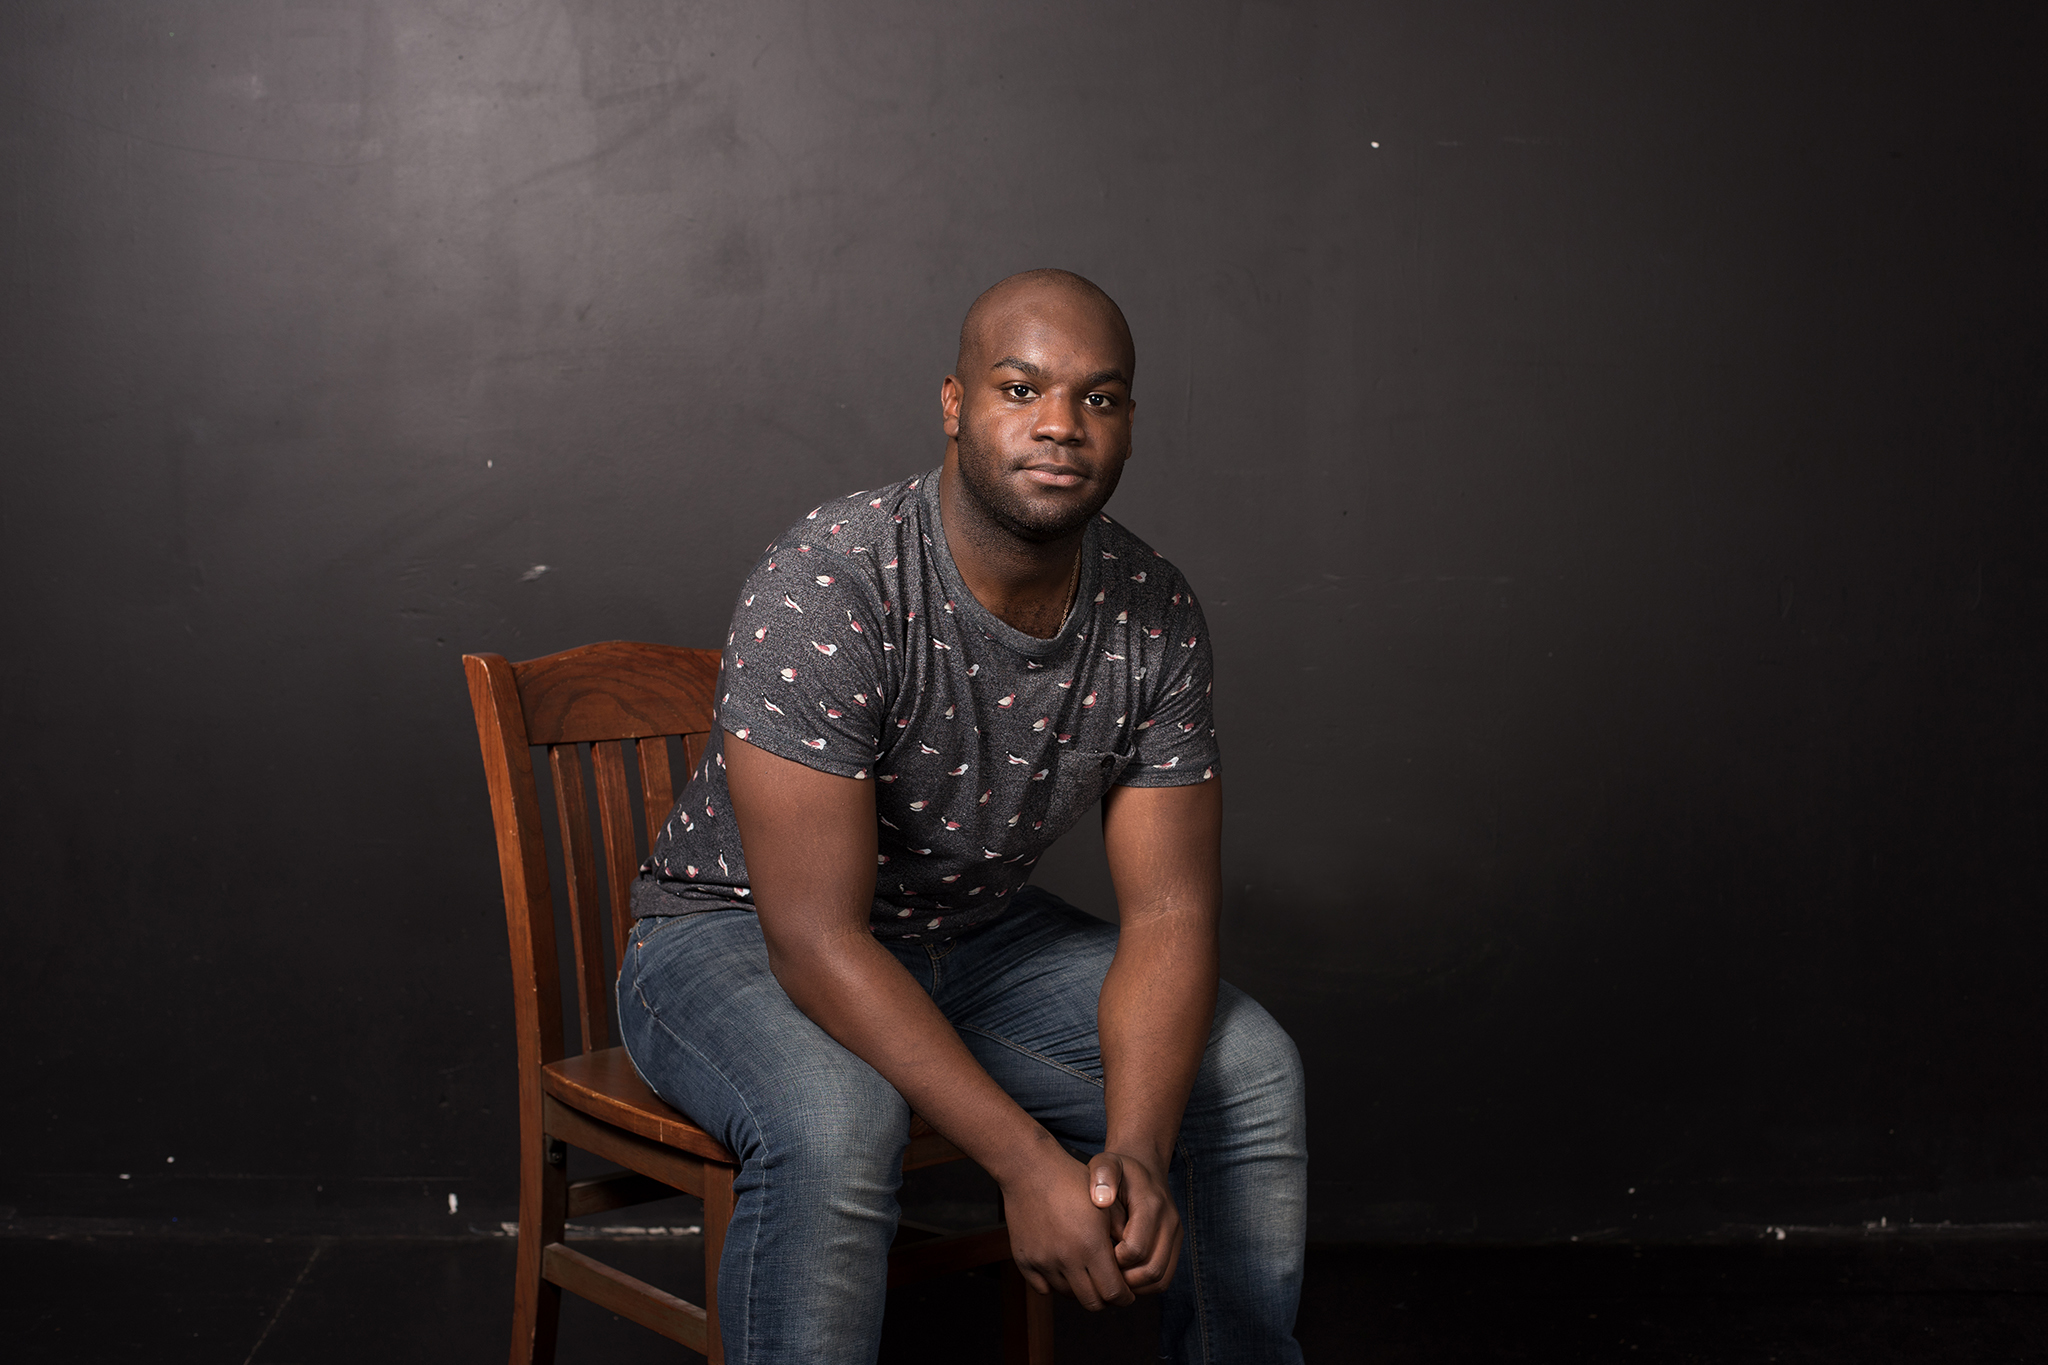 Interview with 2017 Drama Prize Recipient Ike Holter